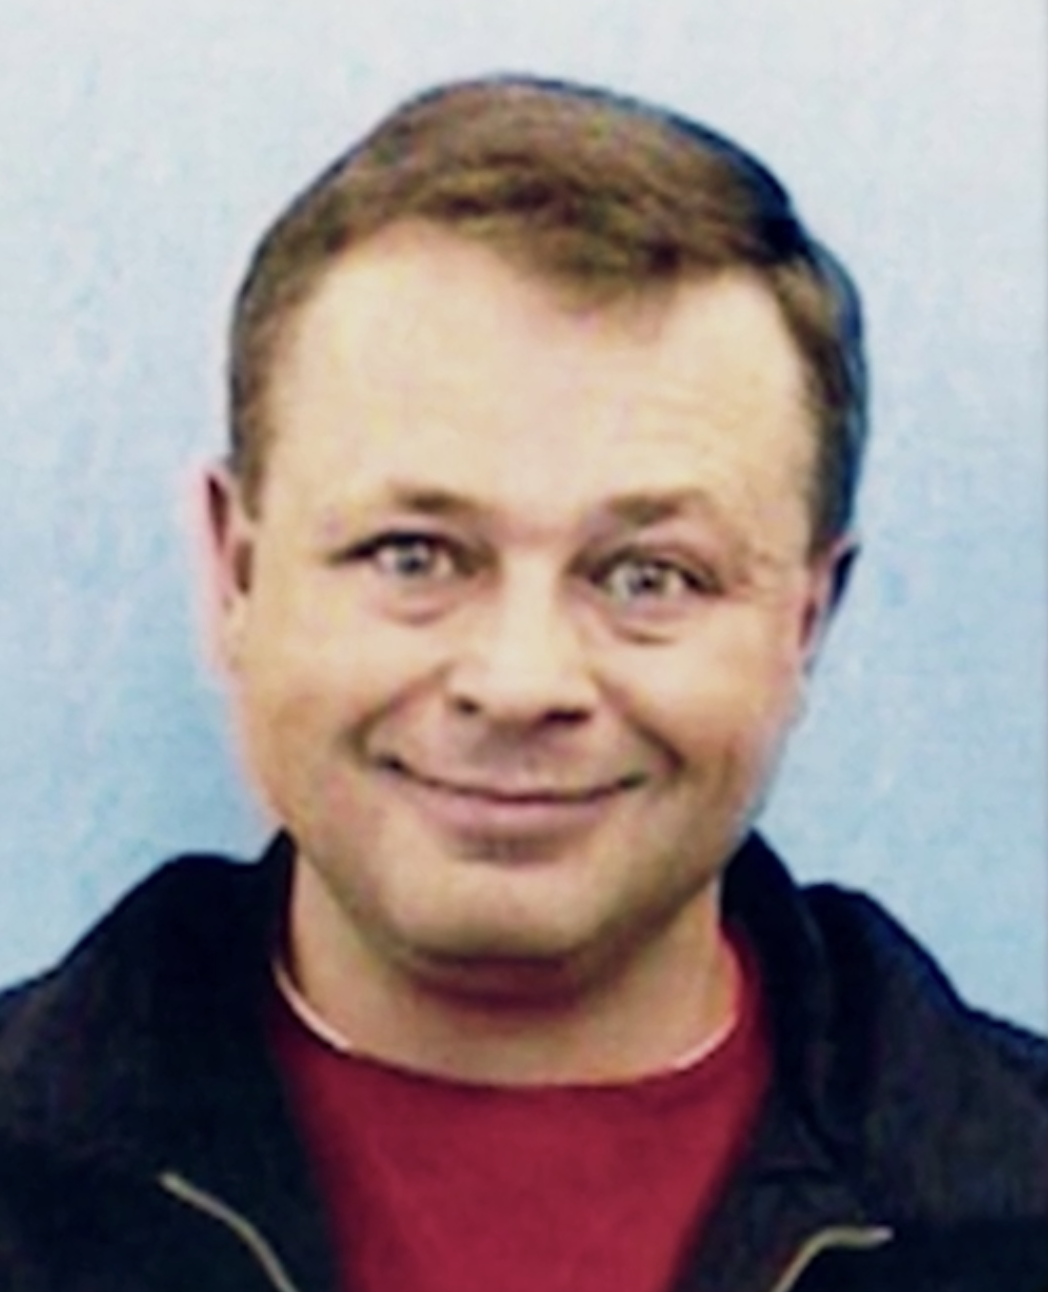 Robert Pinetti, one of Wells' former friends and co-workers at the pizza place died under suspicious circumstances. There are some shady details, but nothing to leads to any significant findings.